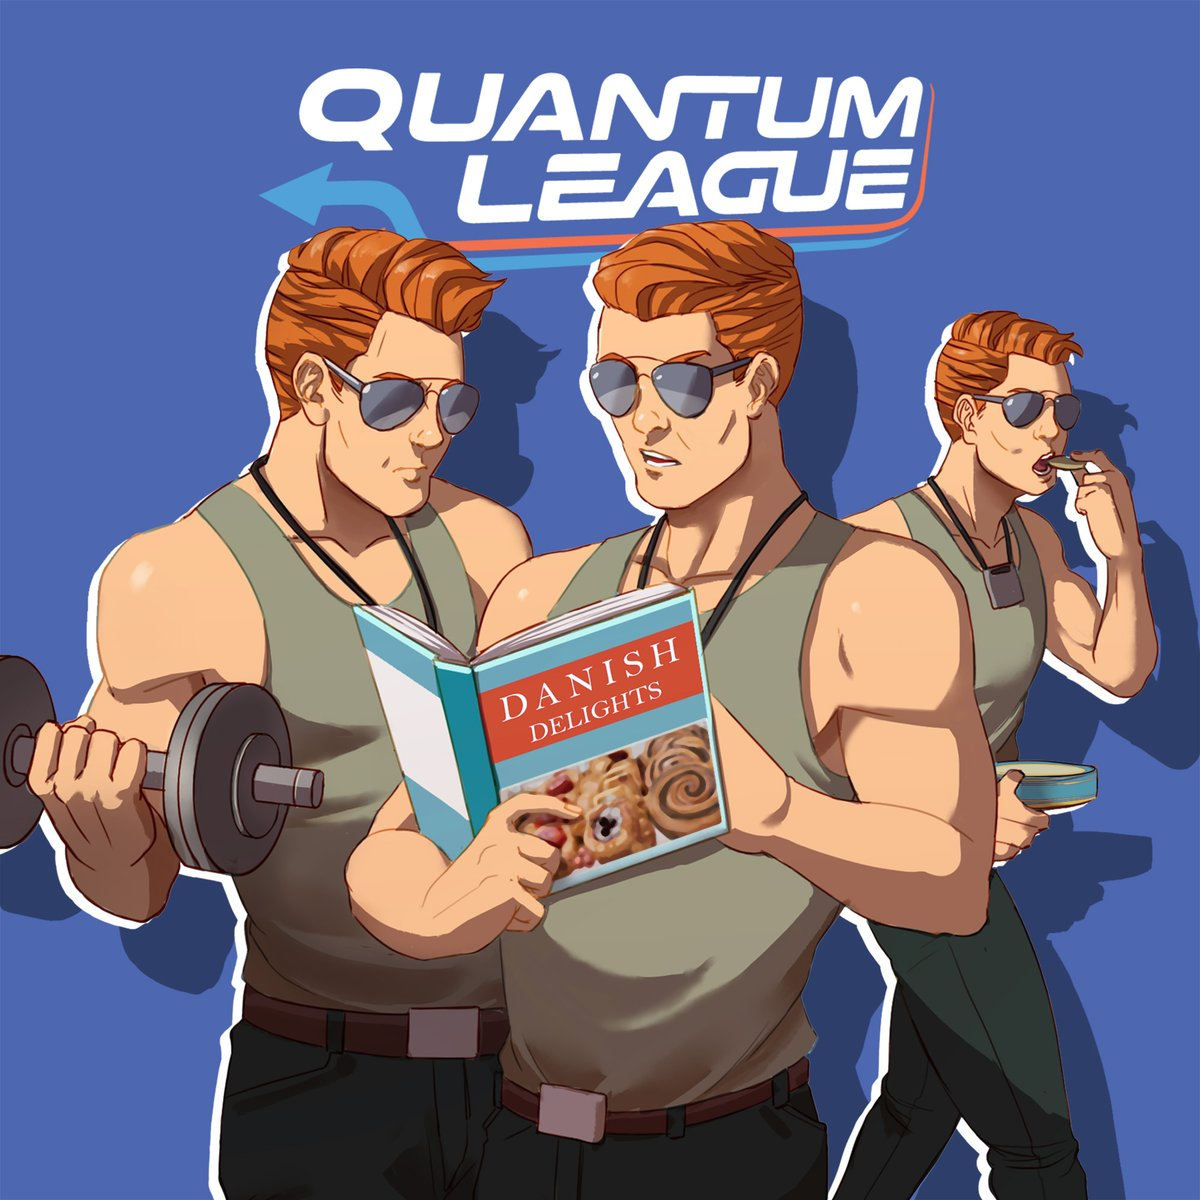 #RepeatDay is an opportunity to do things over and over again. Battle in a time loop and tactically team up with your past and future selves in Quantum League! #RepeatDay is an opportunity to do things over and over again. Battle in a time... you got it. #QuantumLeague https://t.co/wCMw3u9Ak0